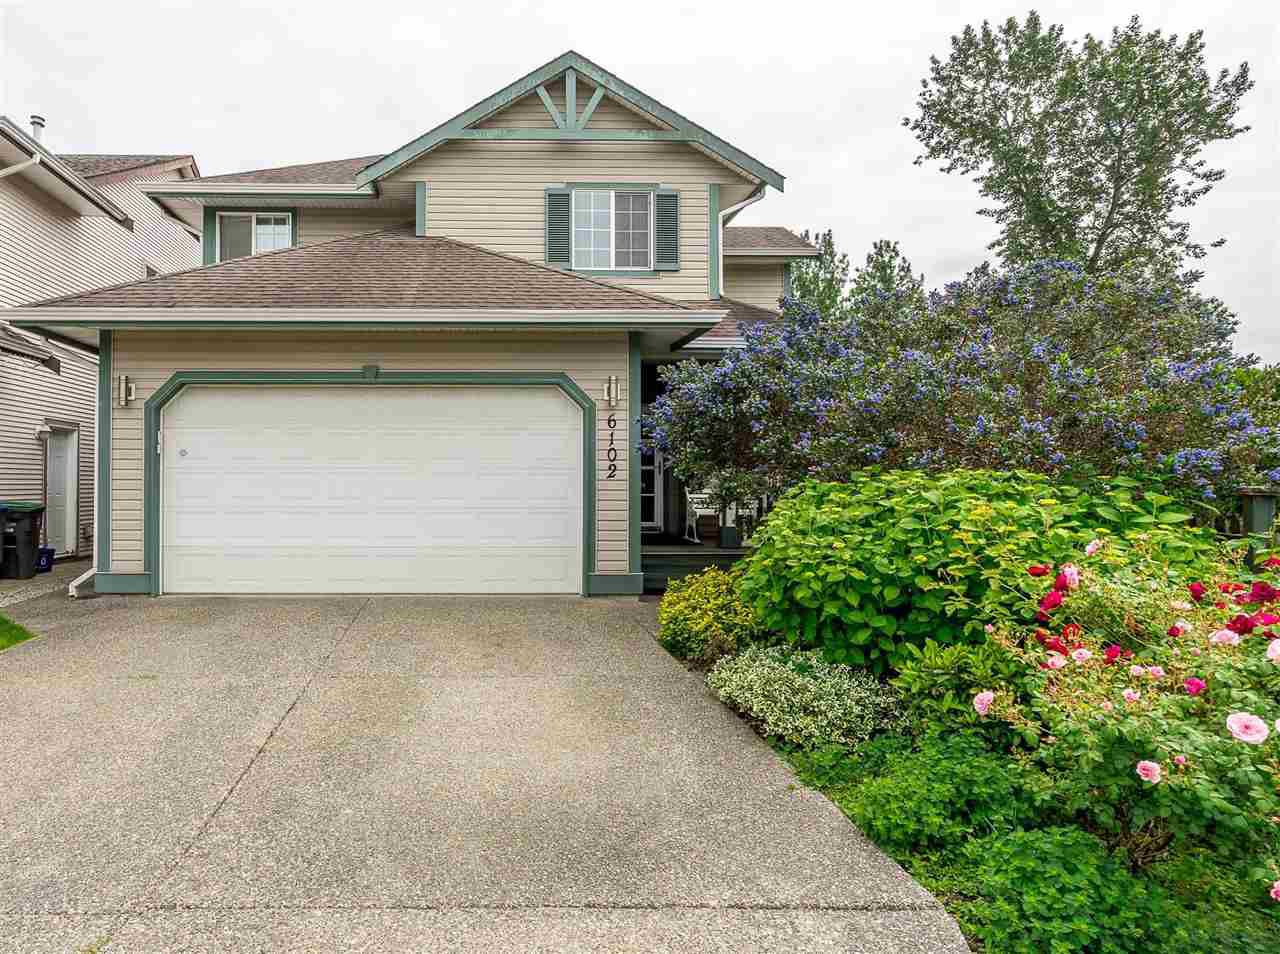 Main Photo: 6102 195 Street in Surrey: Cloverdale BC House for sale (Cloverdale)  : MLS®# R2383500